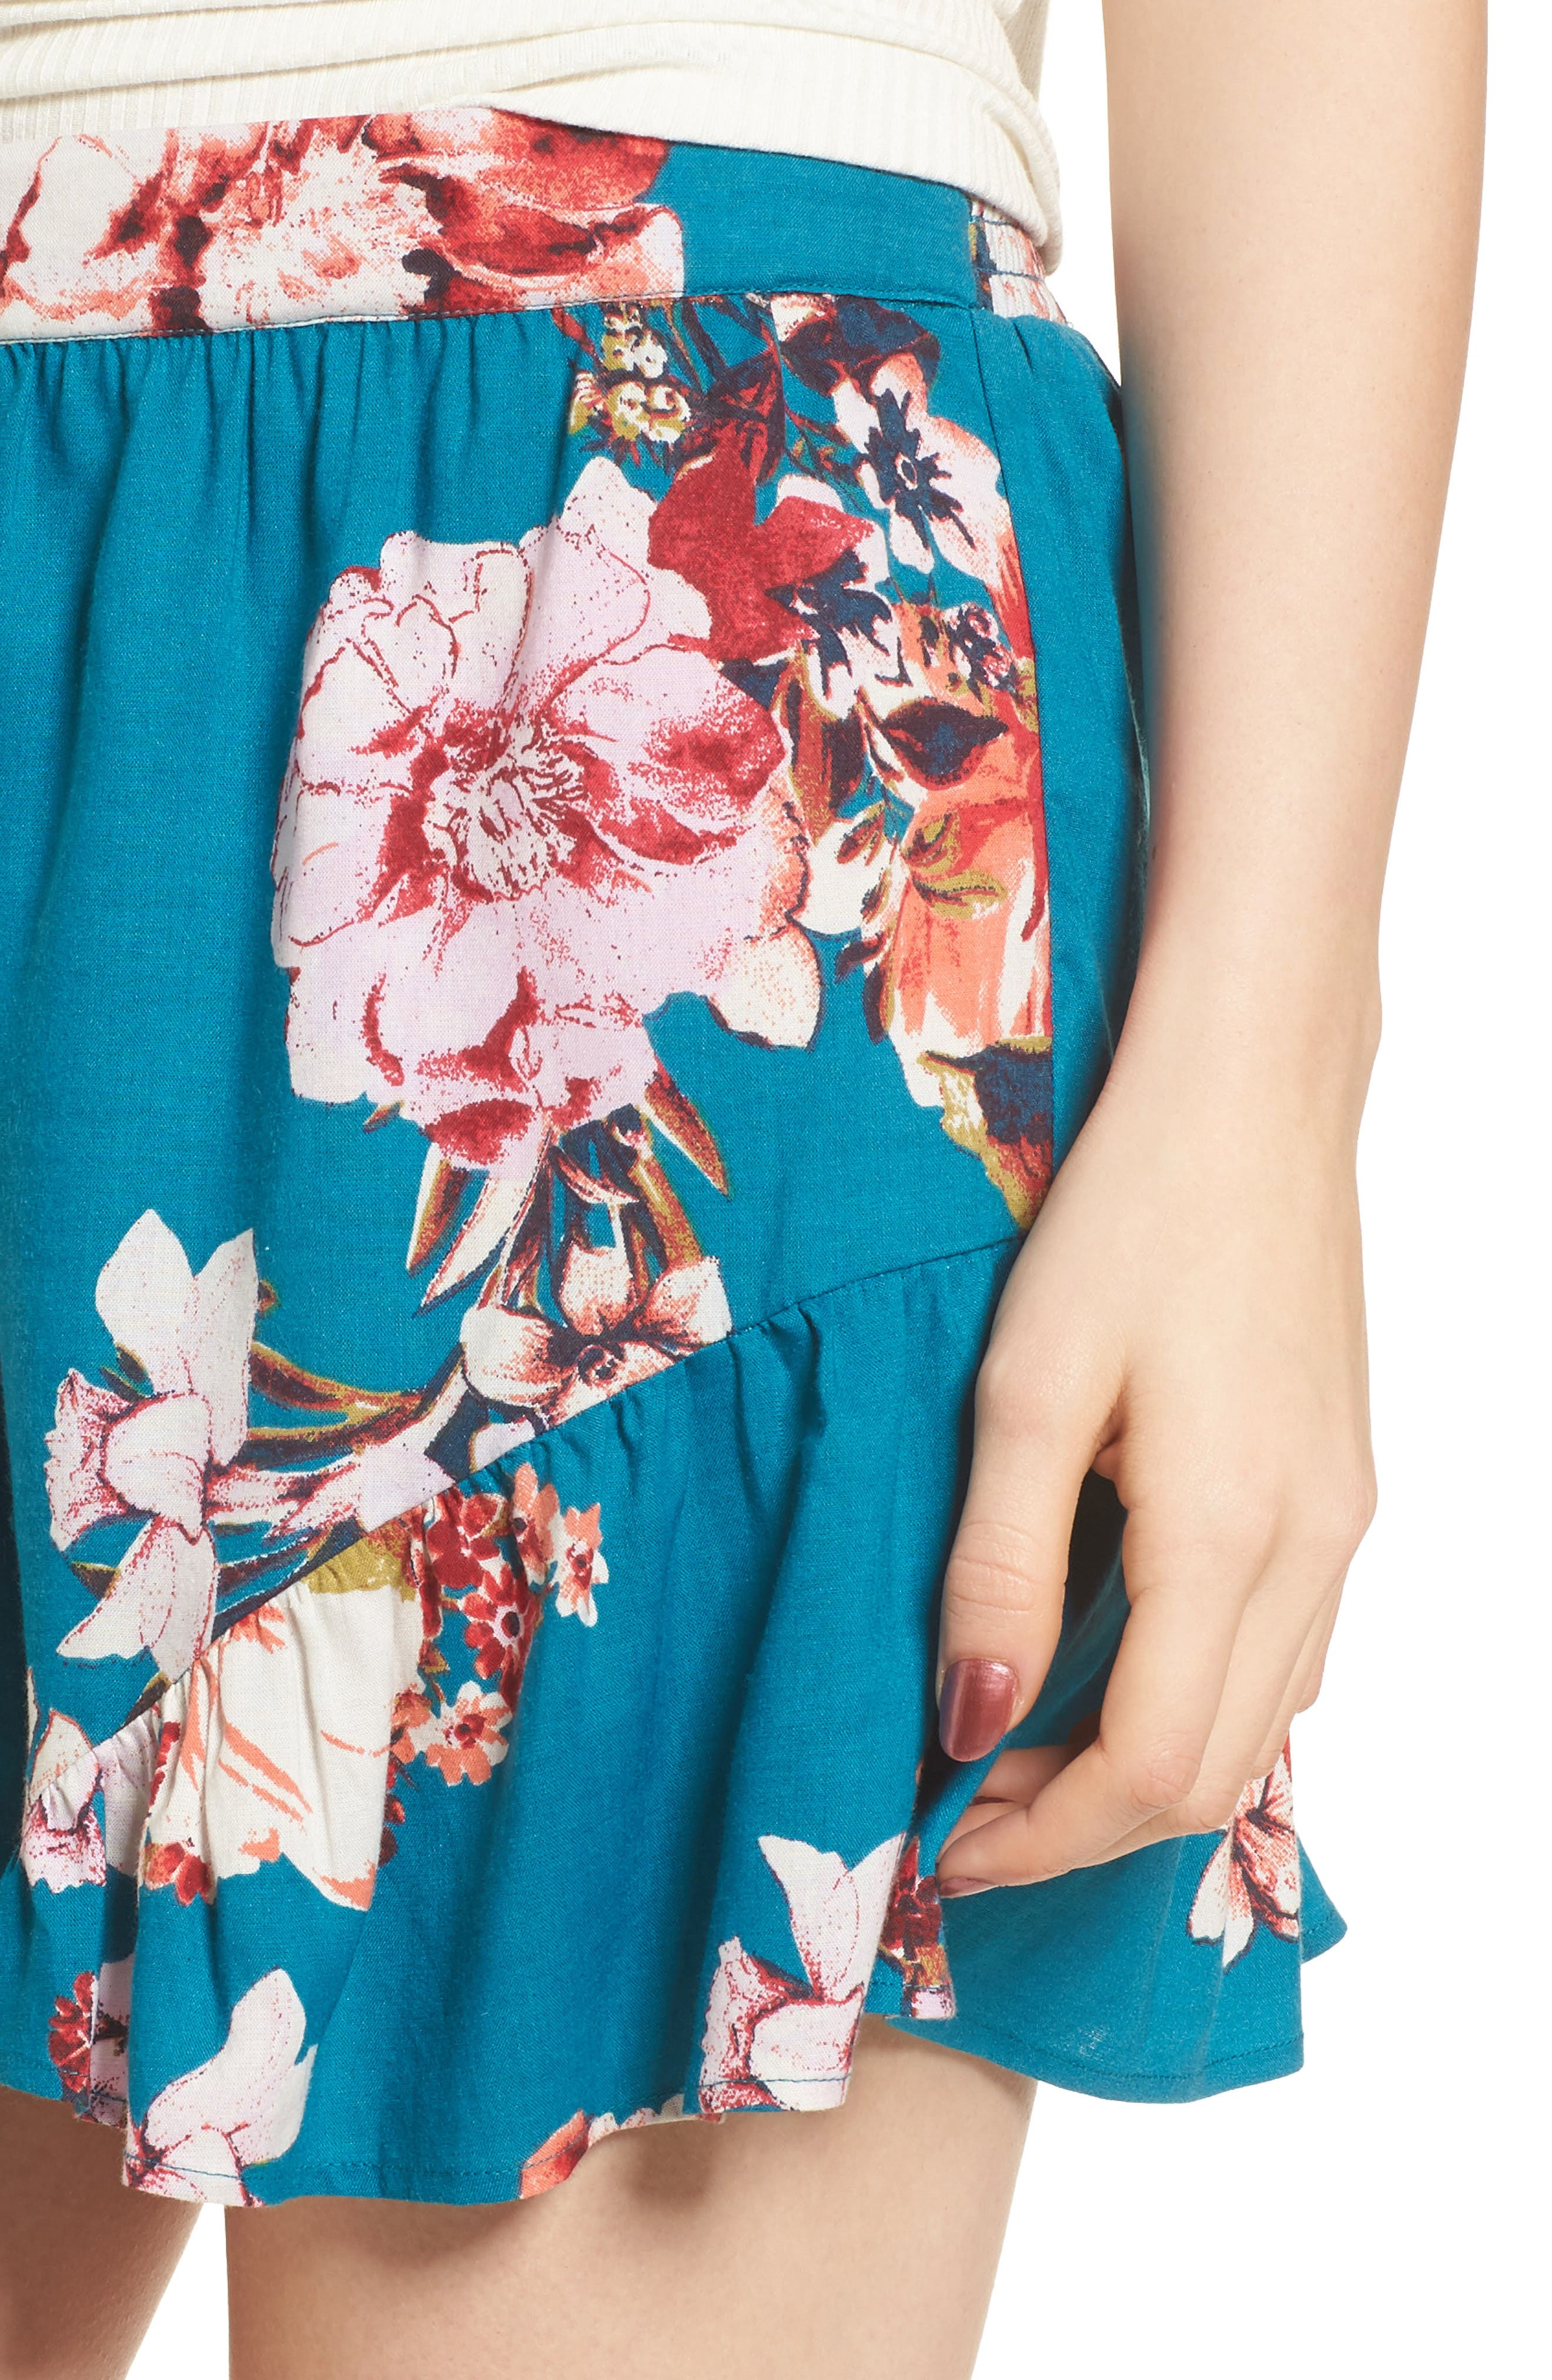 Floral Print Ruffle Hem Shorts,                             Alternate thumbnail 5, color,                             Teal/ Peach